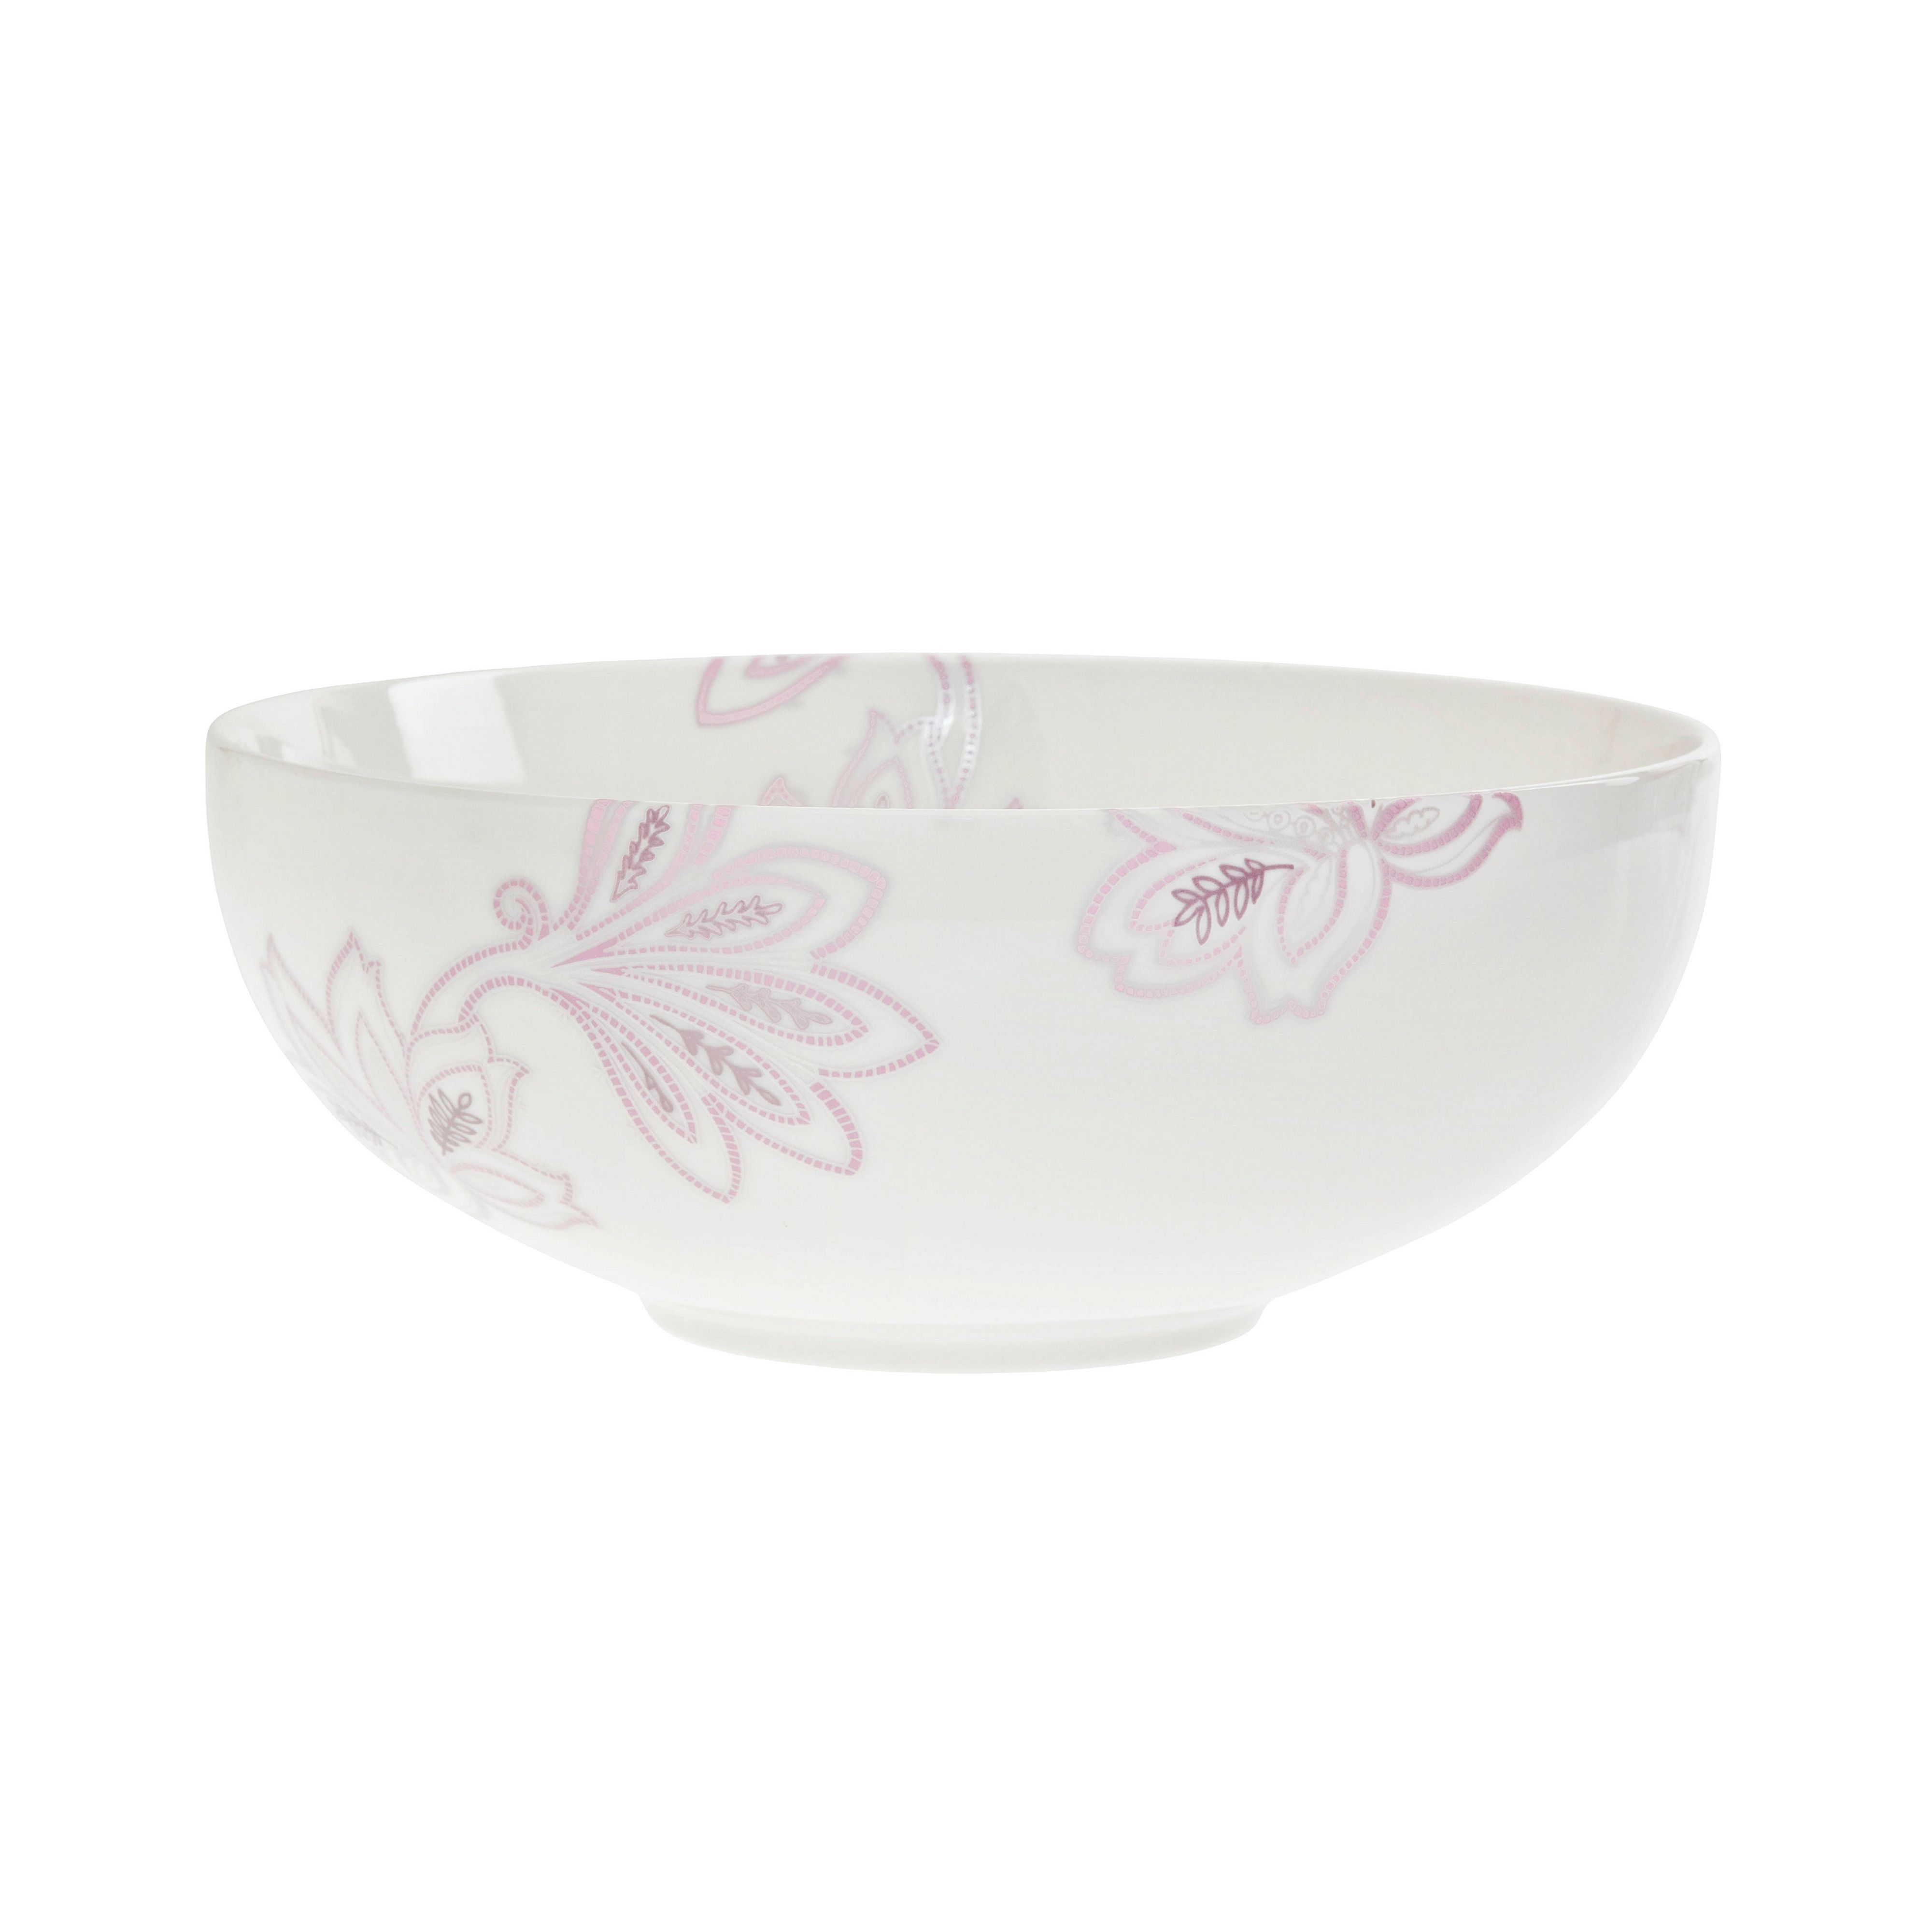 Chantilly serving bowl